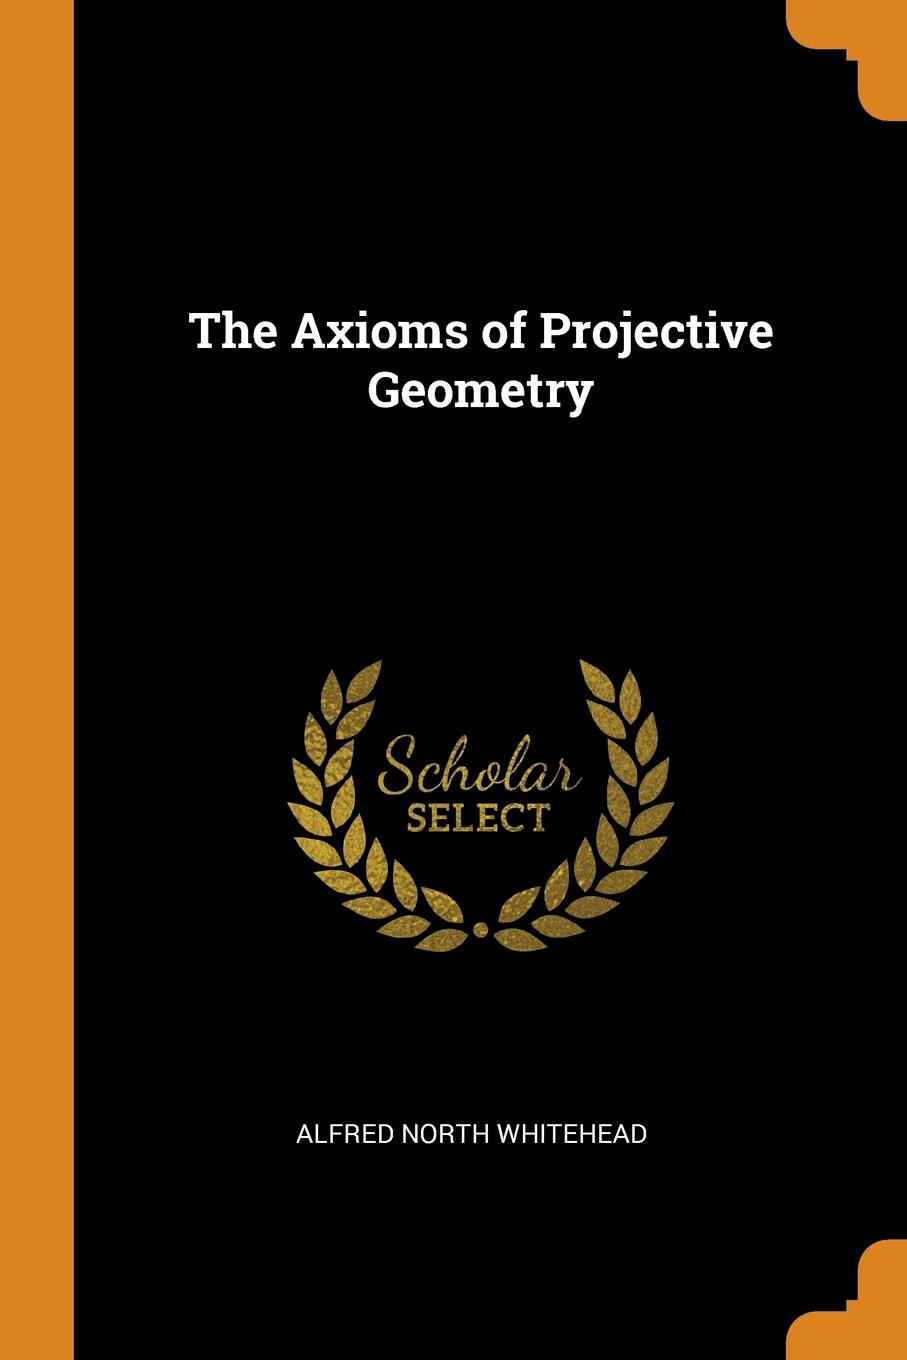 Alfred North Whitehead The Axioms of Projective Geometry alfred north whitehead the axioms of projective geometry